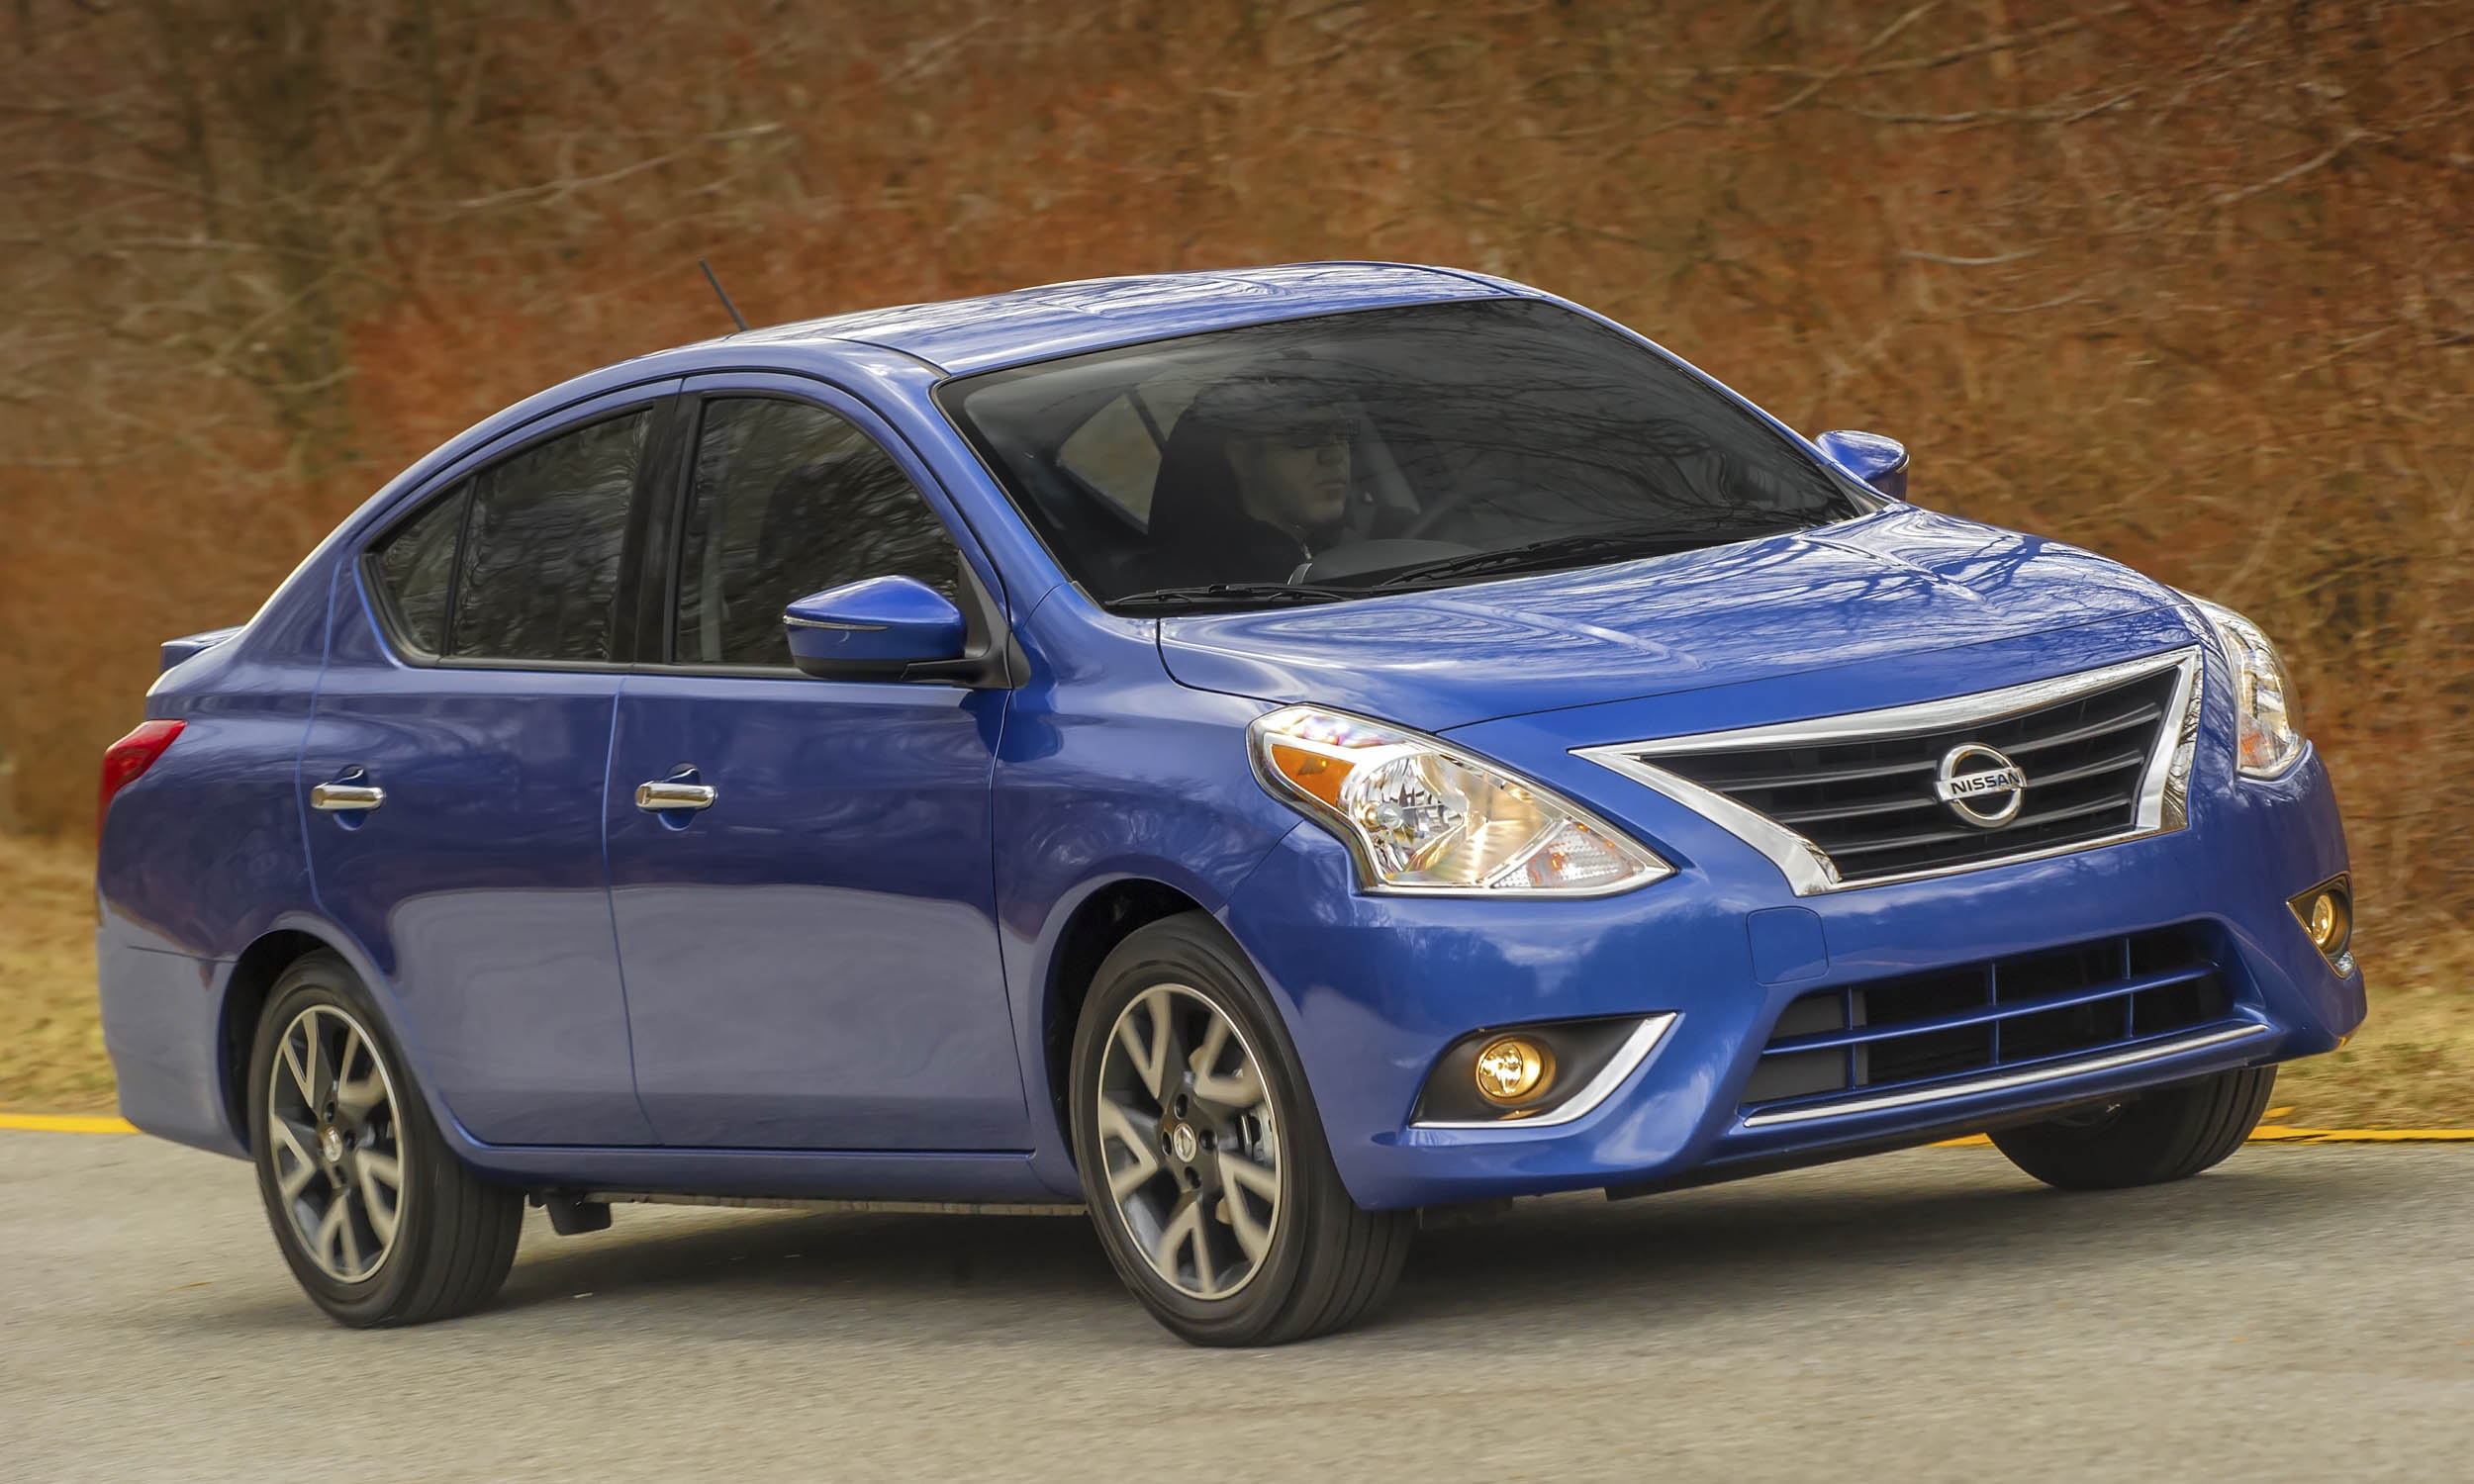 2017 Nissan Versa Least Expensive New